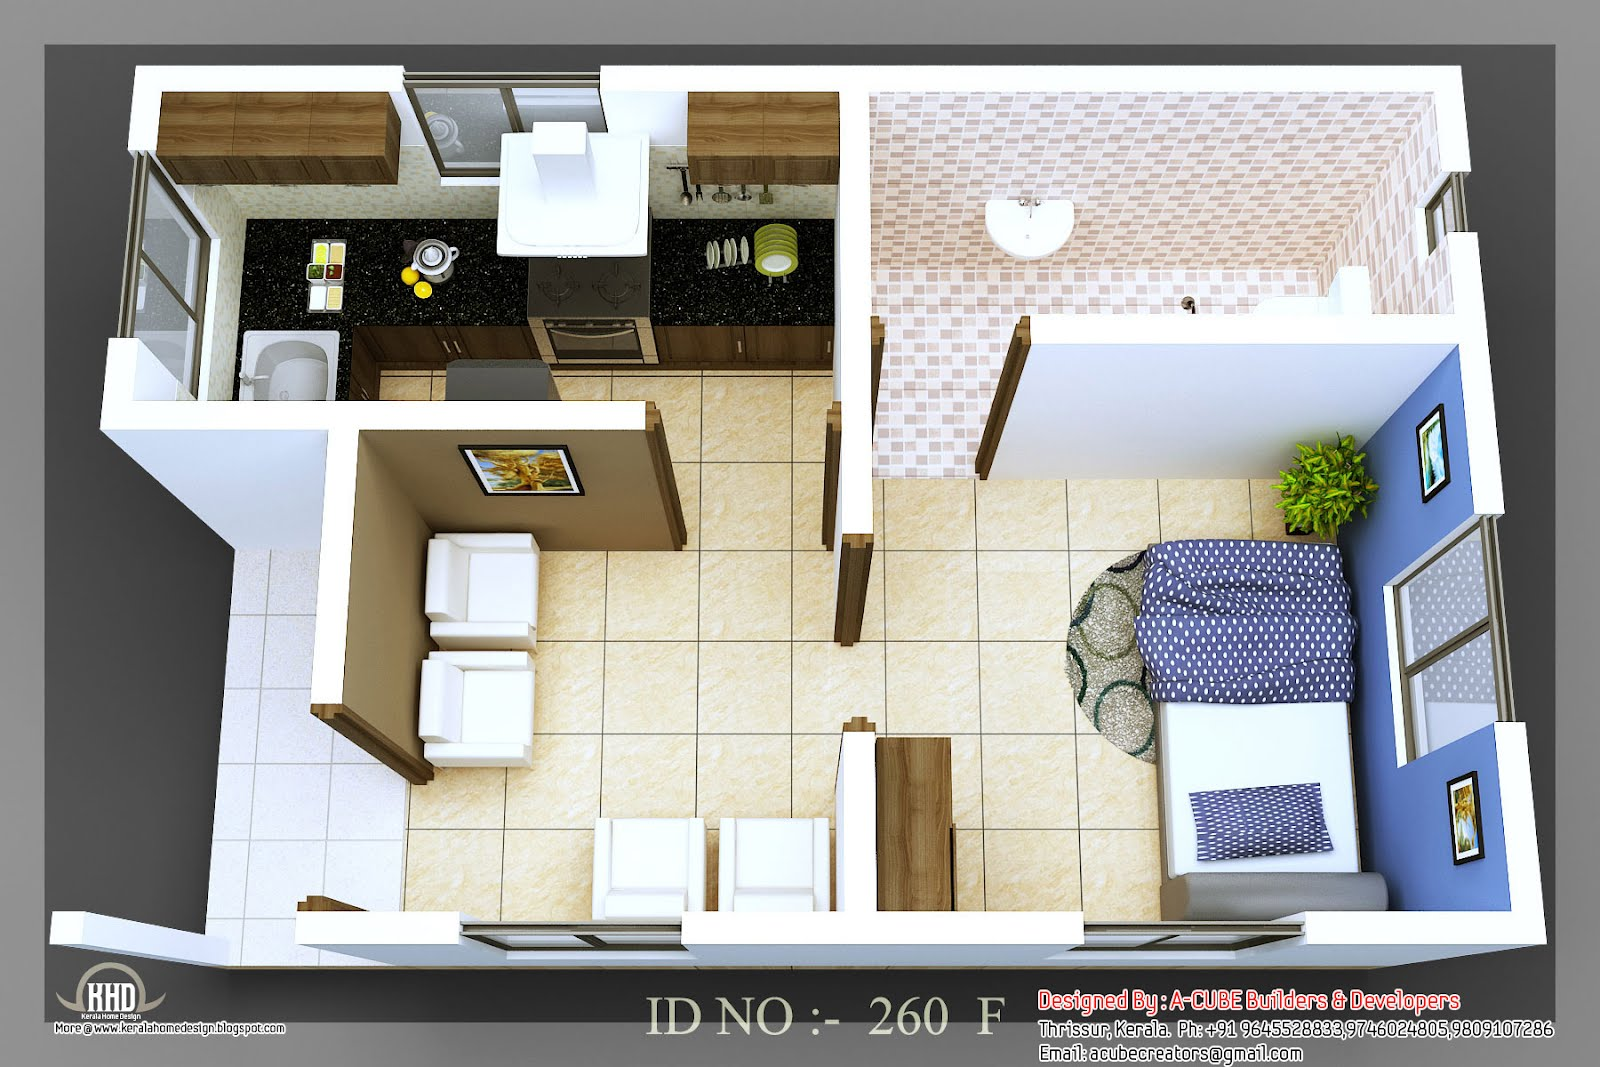 3d isometric views of small house plans home appliance for Free small house plans indian style